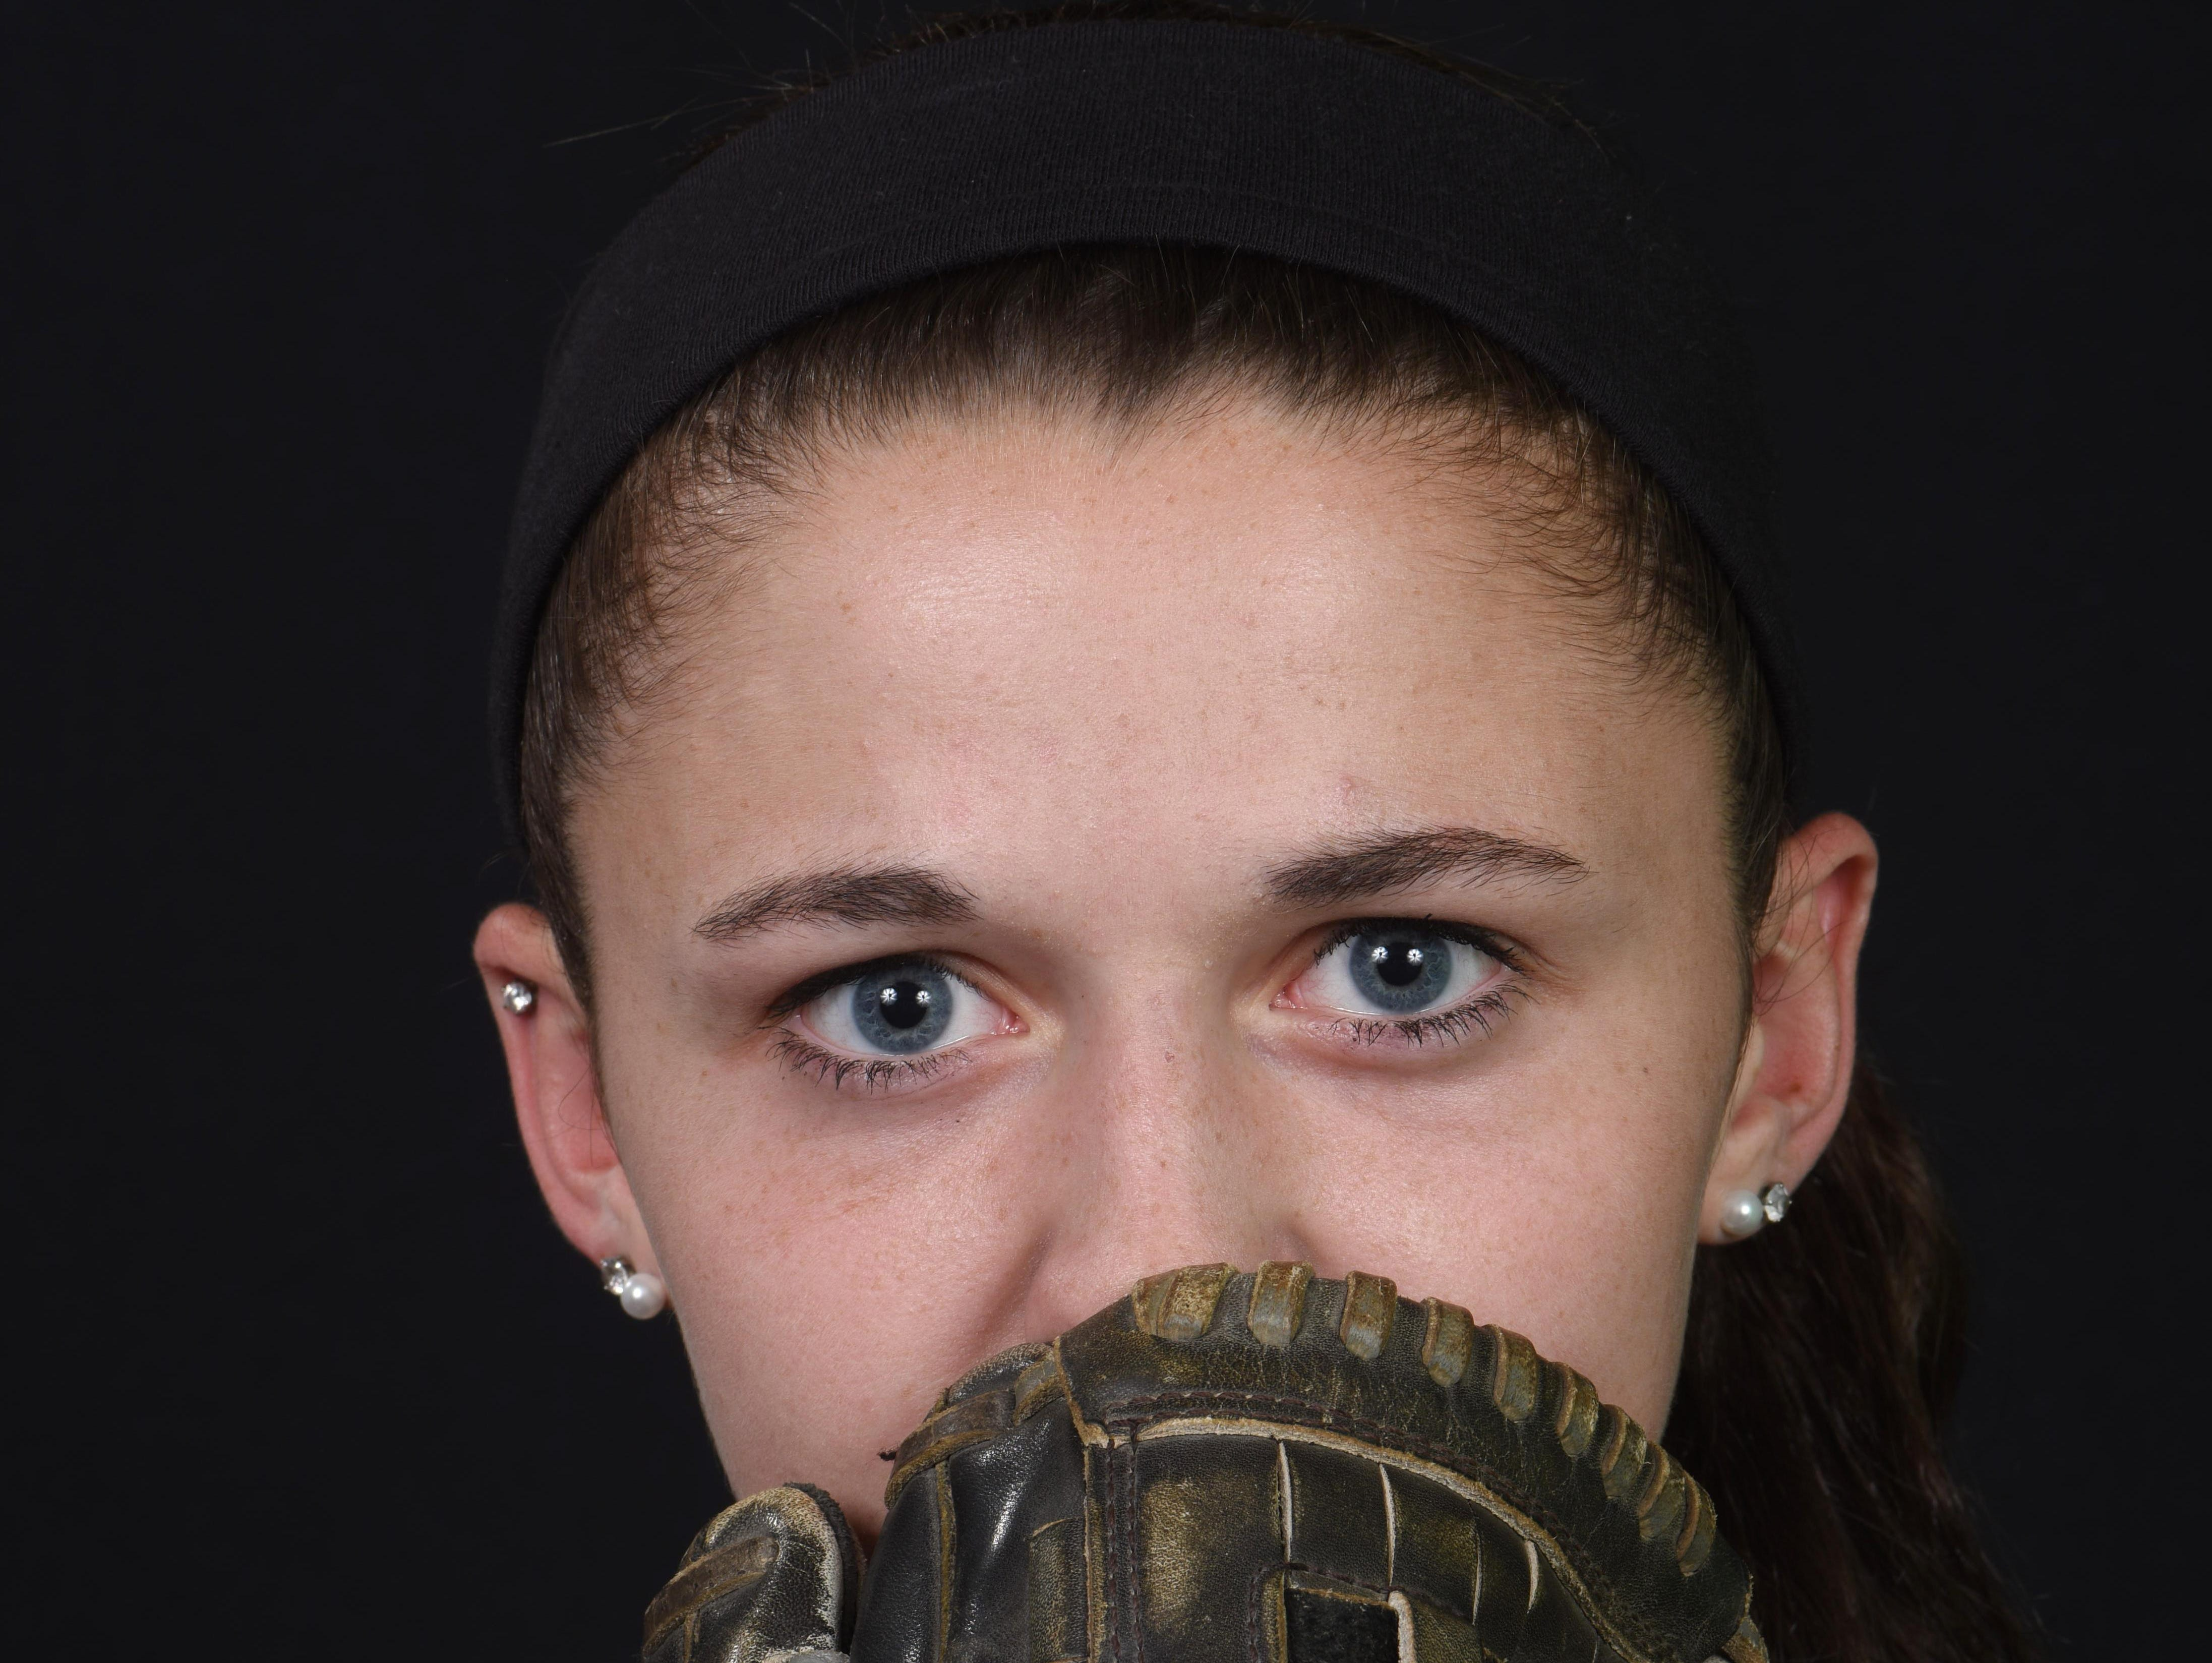 Allison Pritchard went 16-2 this season for Franklin D. Roosevelt with a 1.53 ERA and 127 strikeouts.